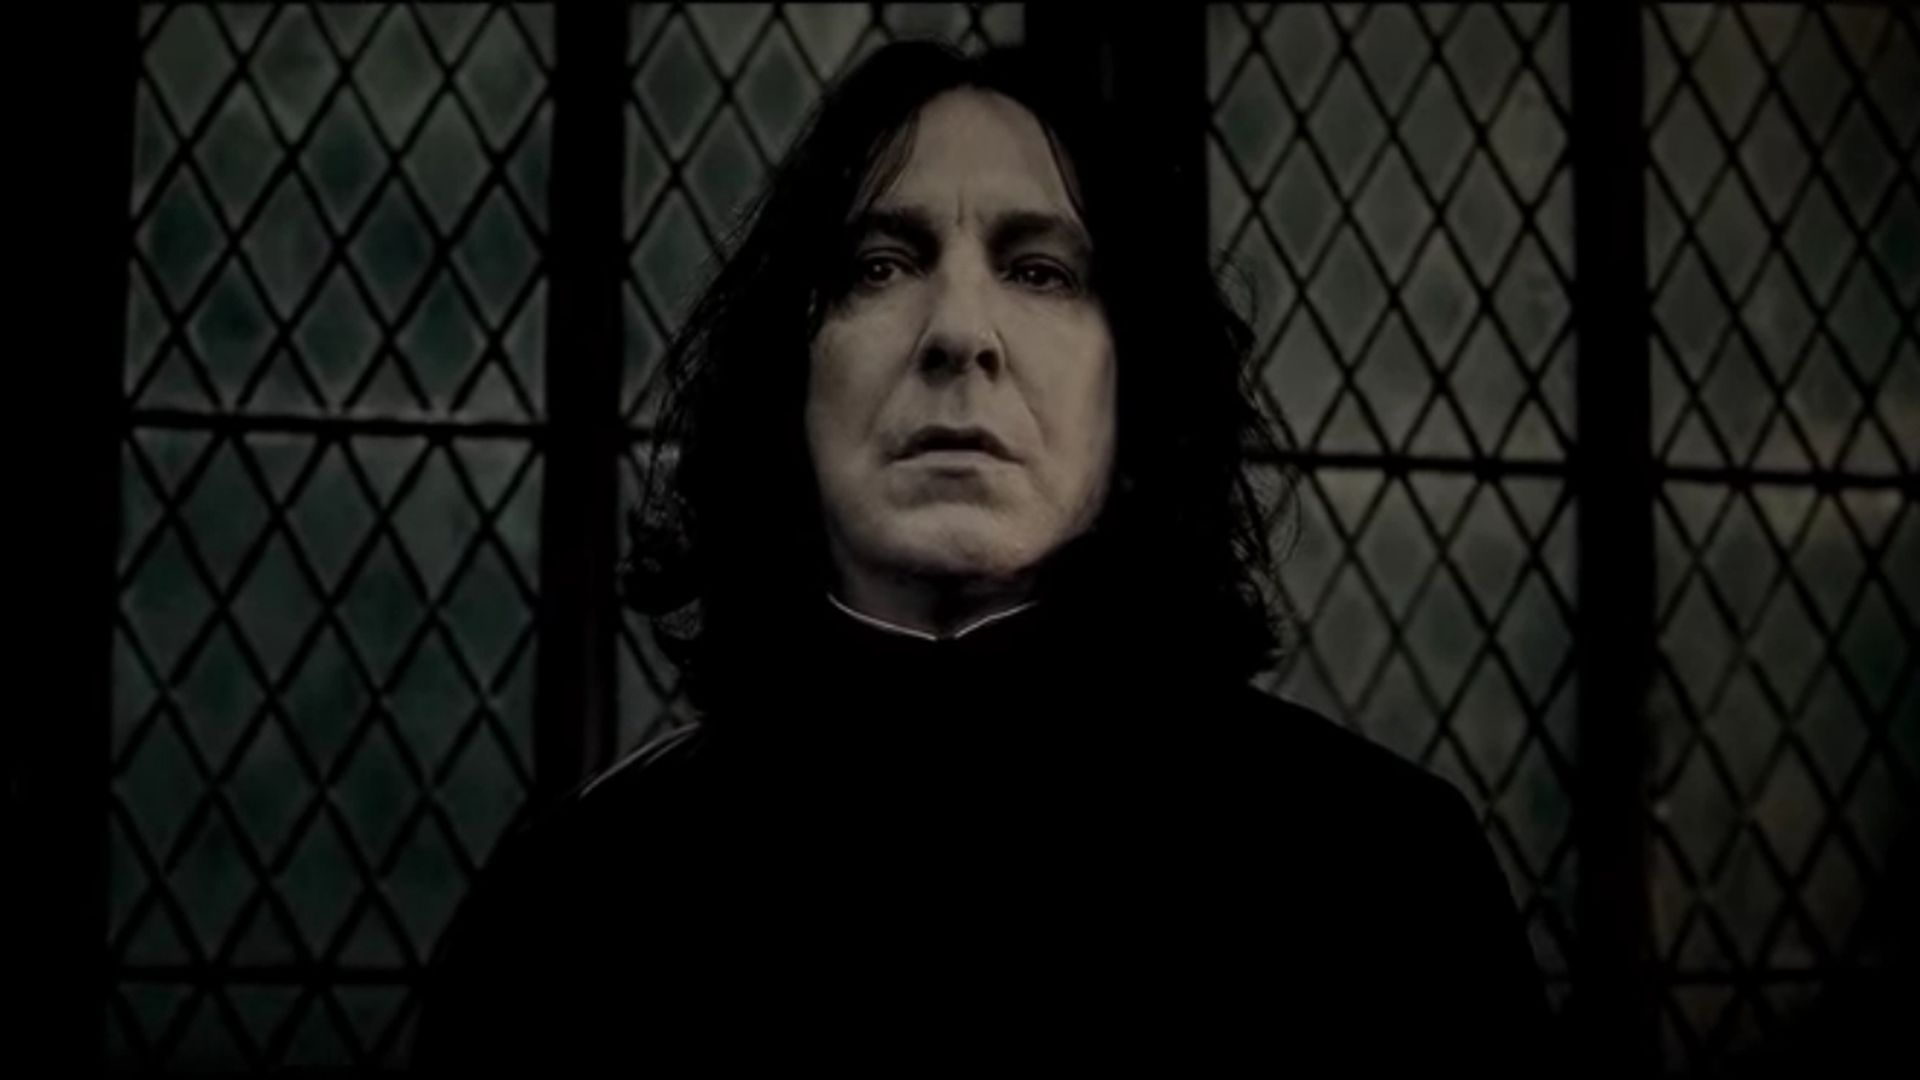 Zoo: Which Death Eater Are You?